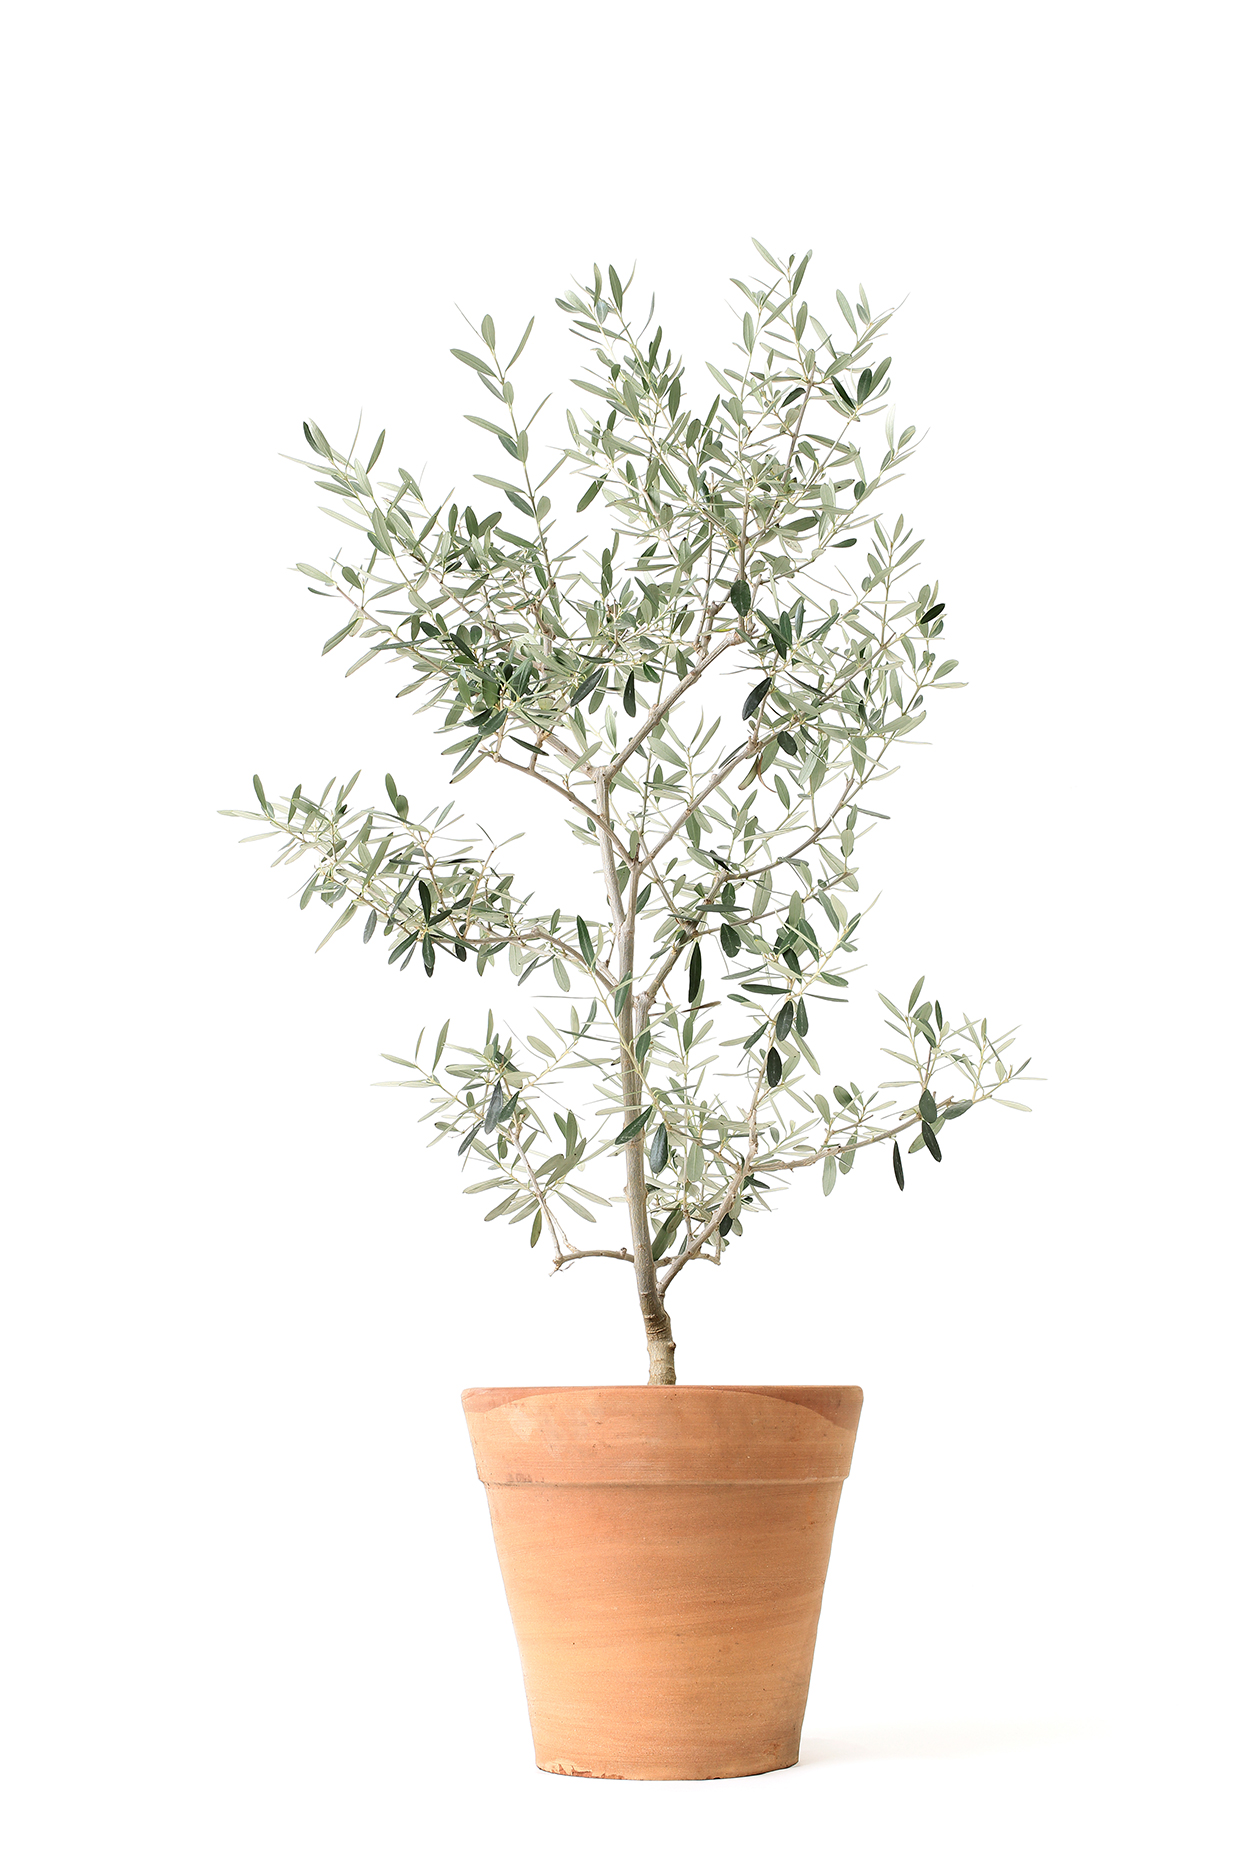 Move Over Fiddle Leaf Fig! Here's Why the Olive Tree Is Our New Favorite Houseplant